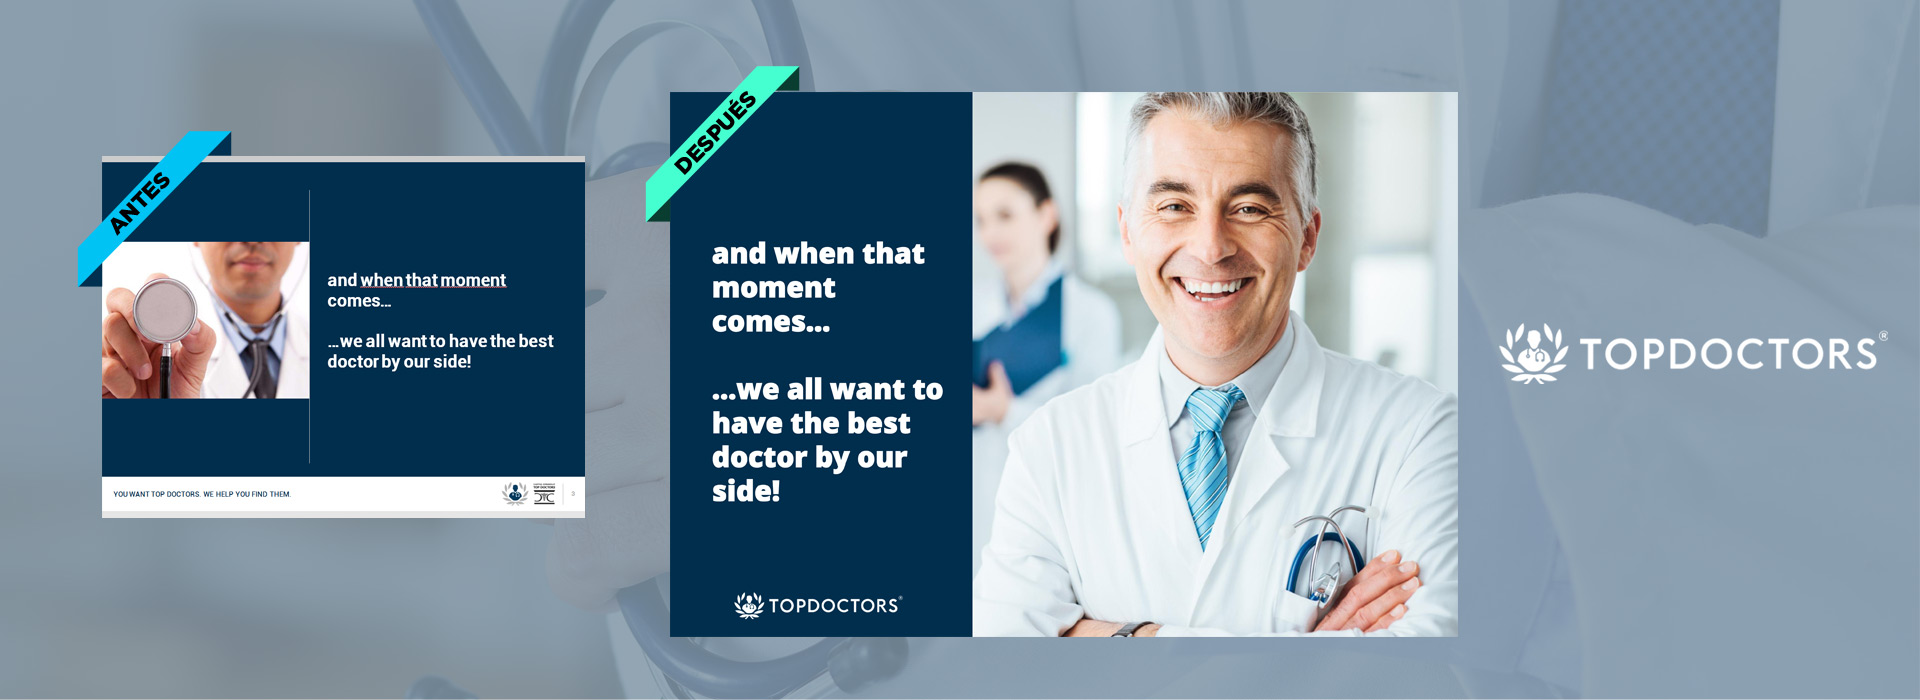 cabecera-power-point-topdoctors